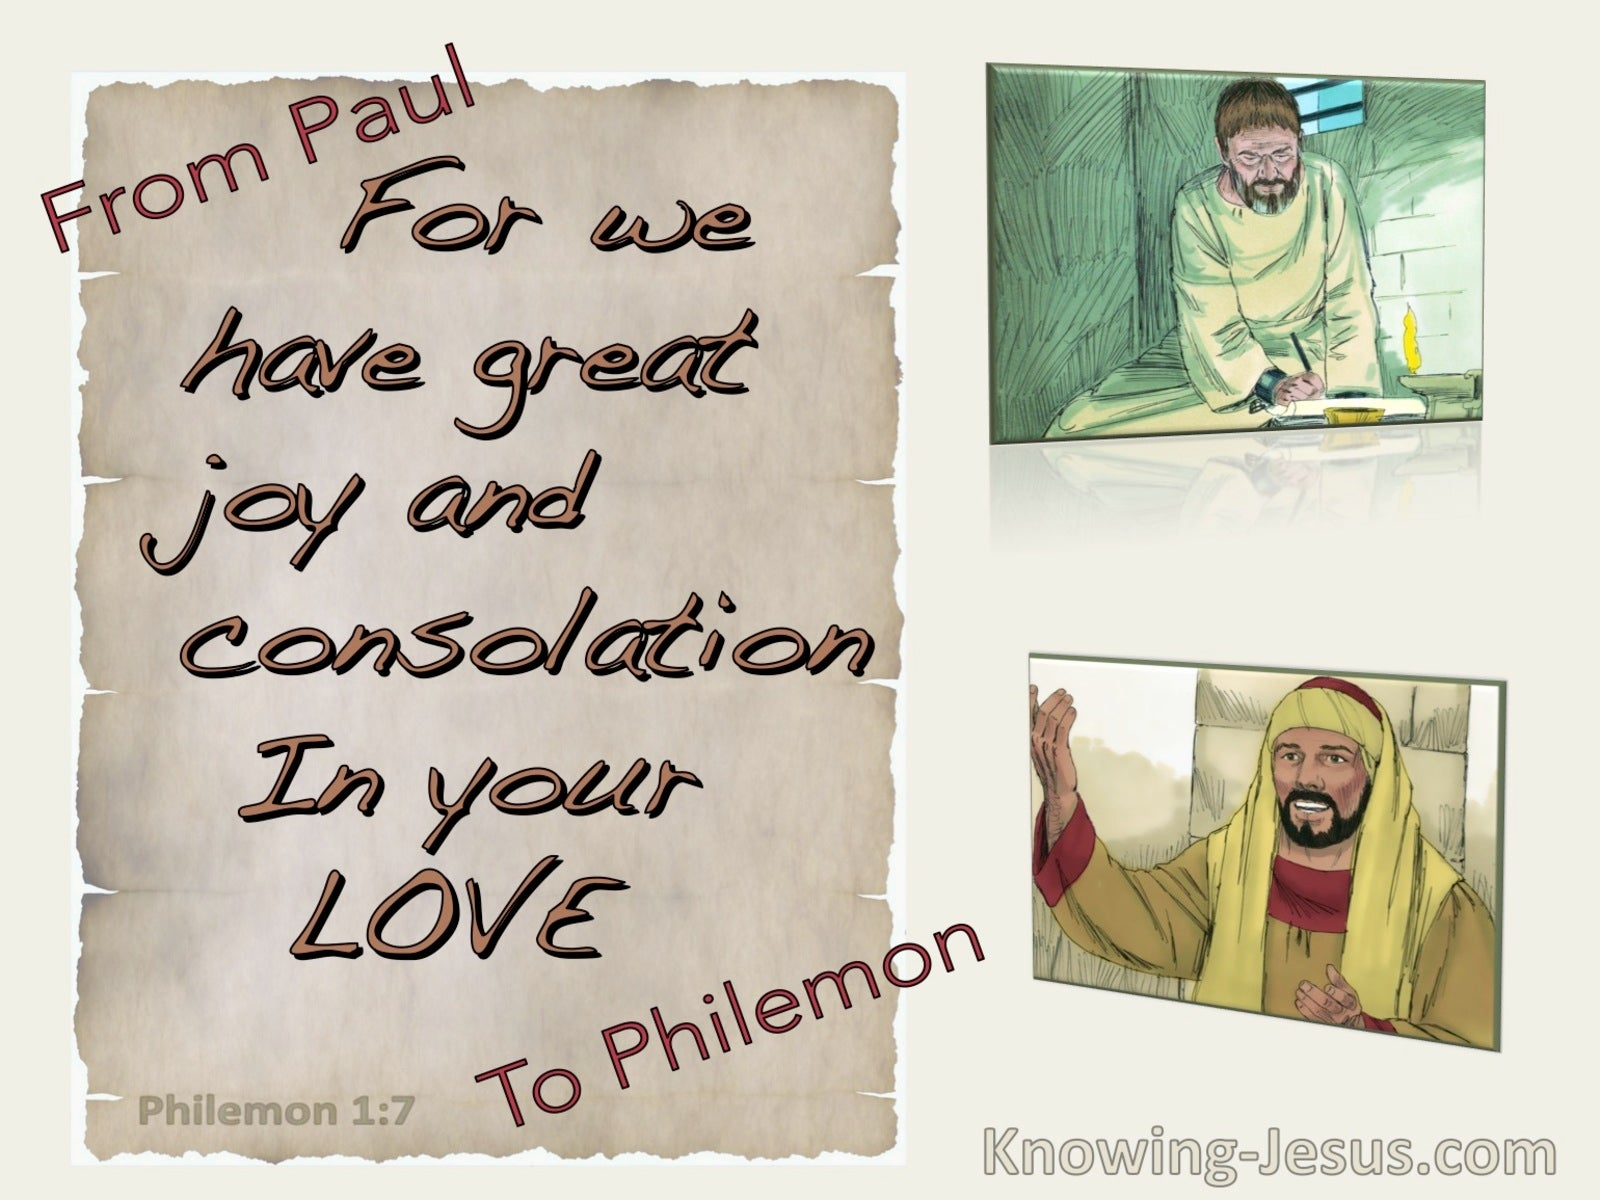 Philemon 1:7 We Have Great Joy And Consolation In Your Love (brown)